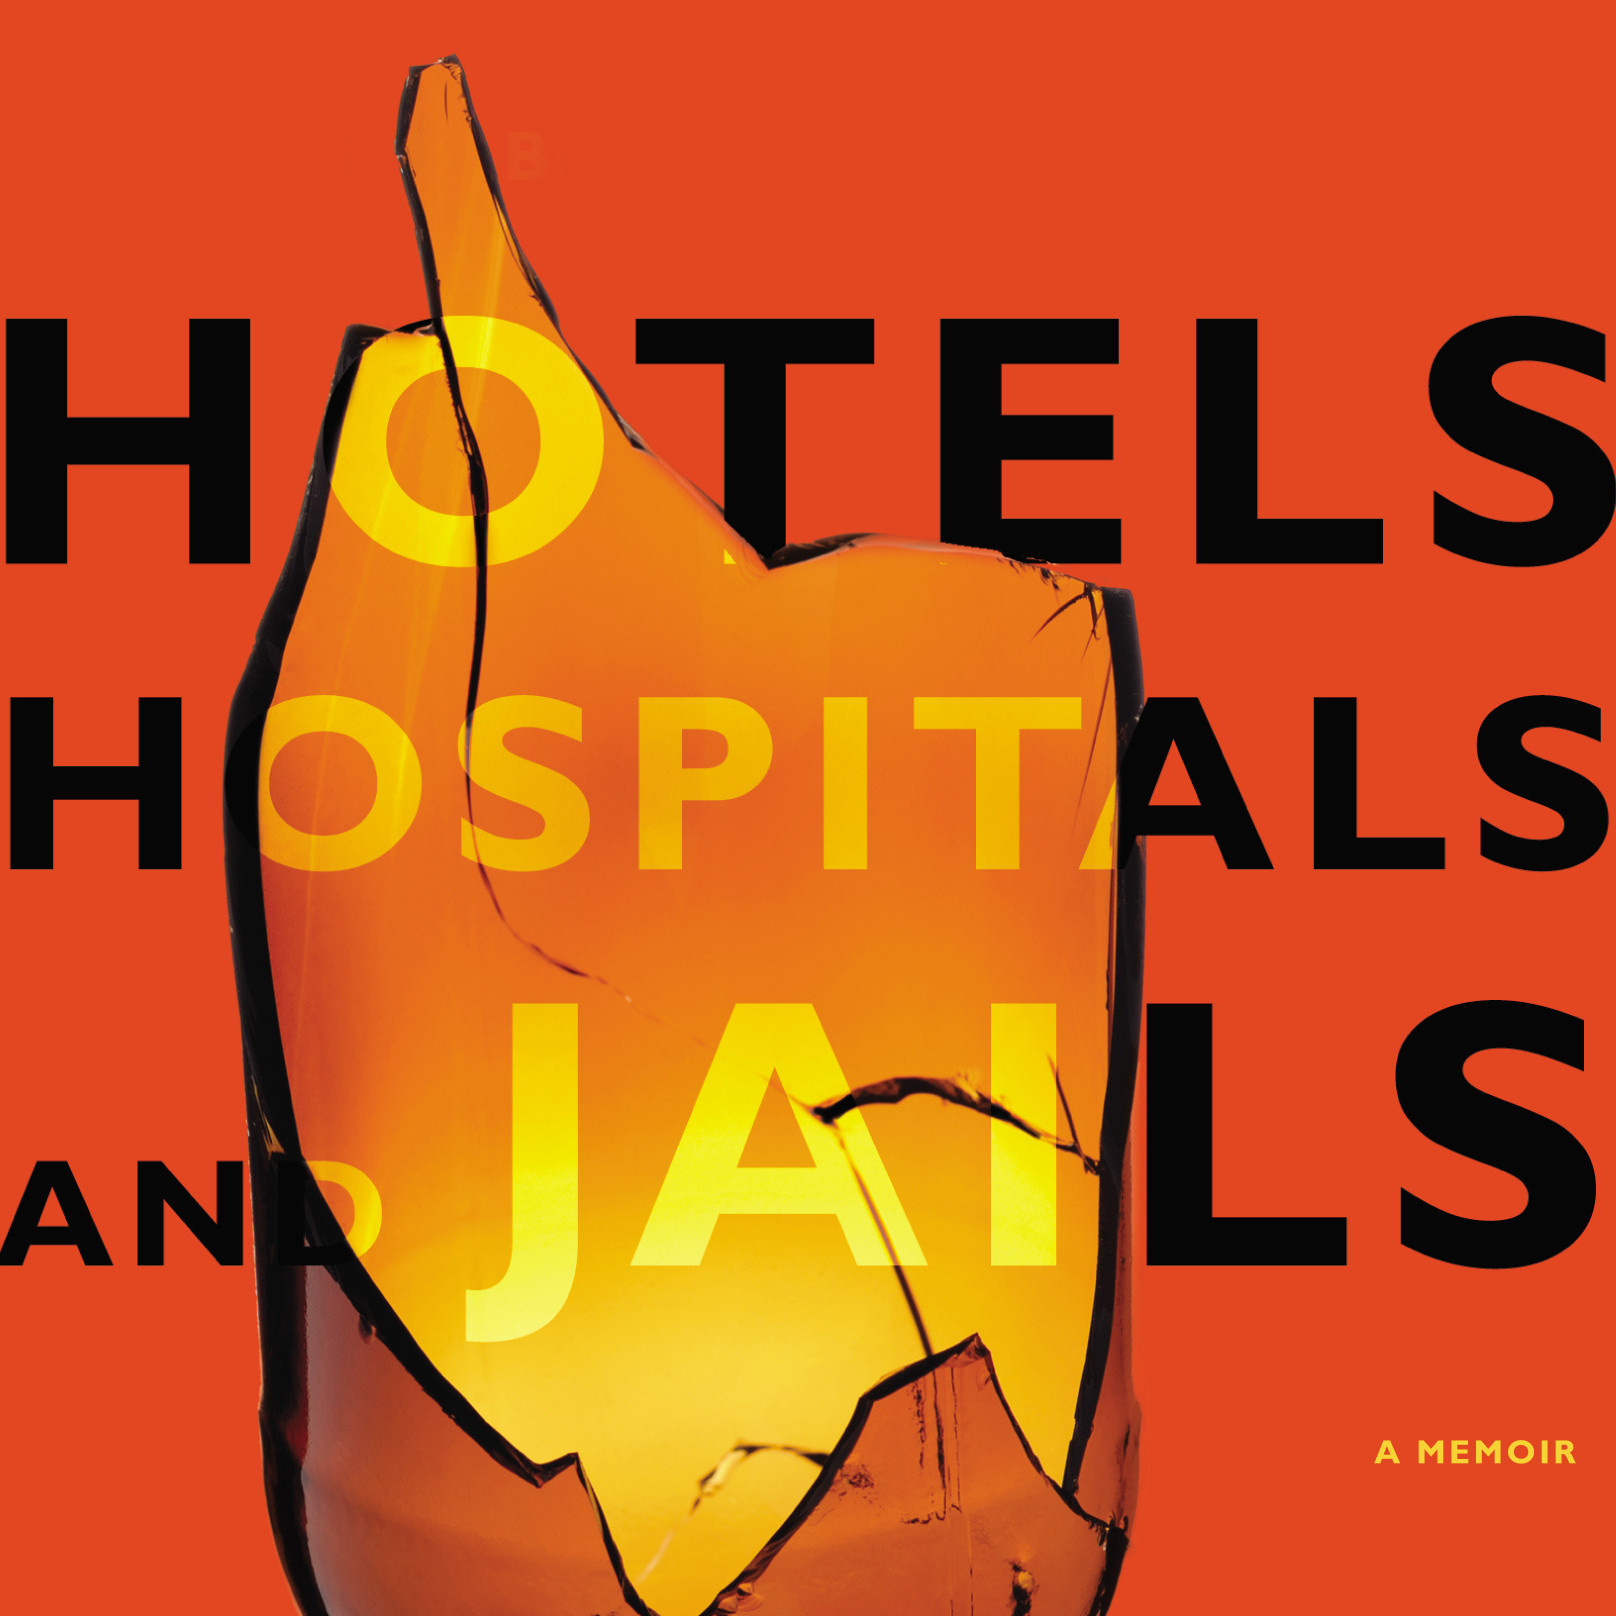 Hotels, Hospitals, and Jails book cover